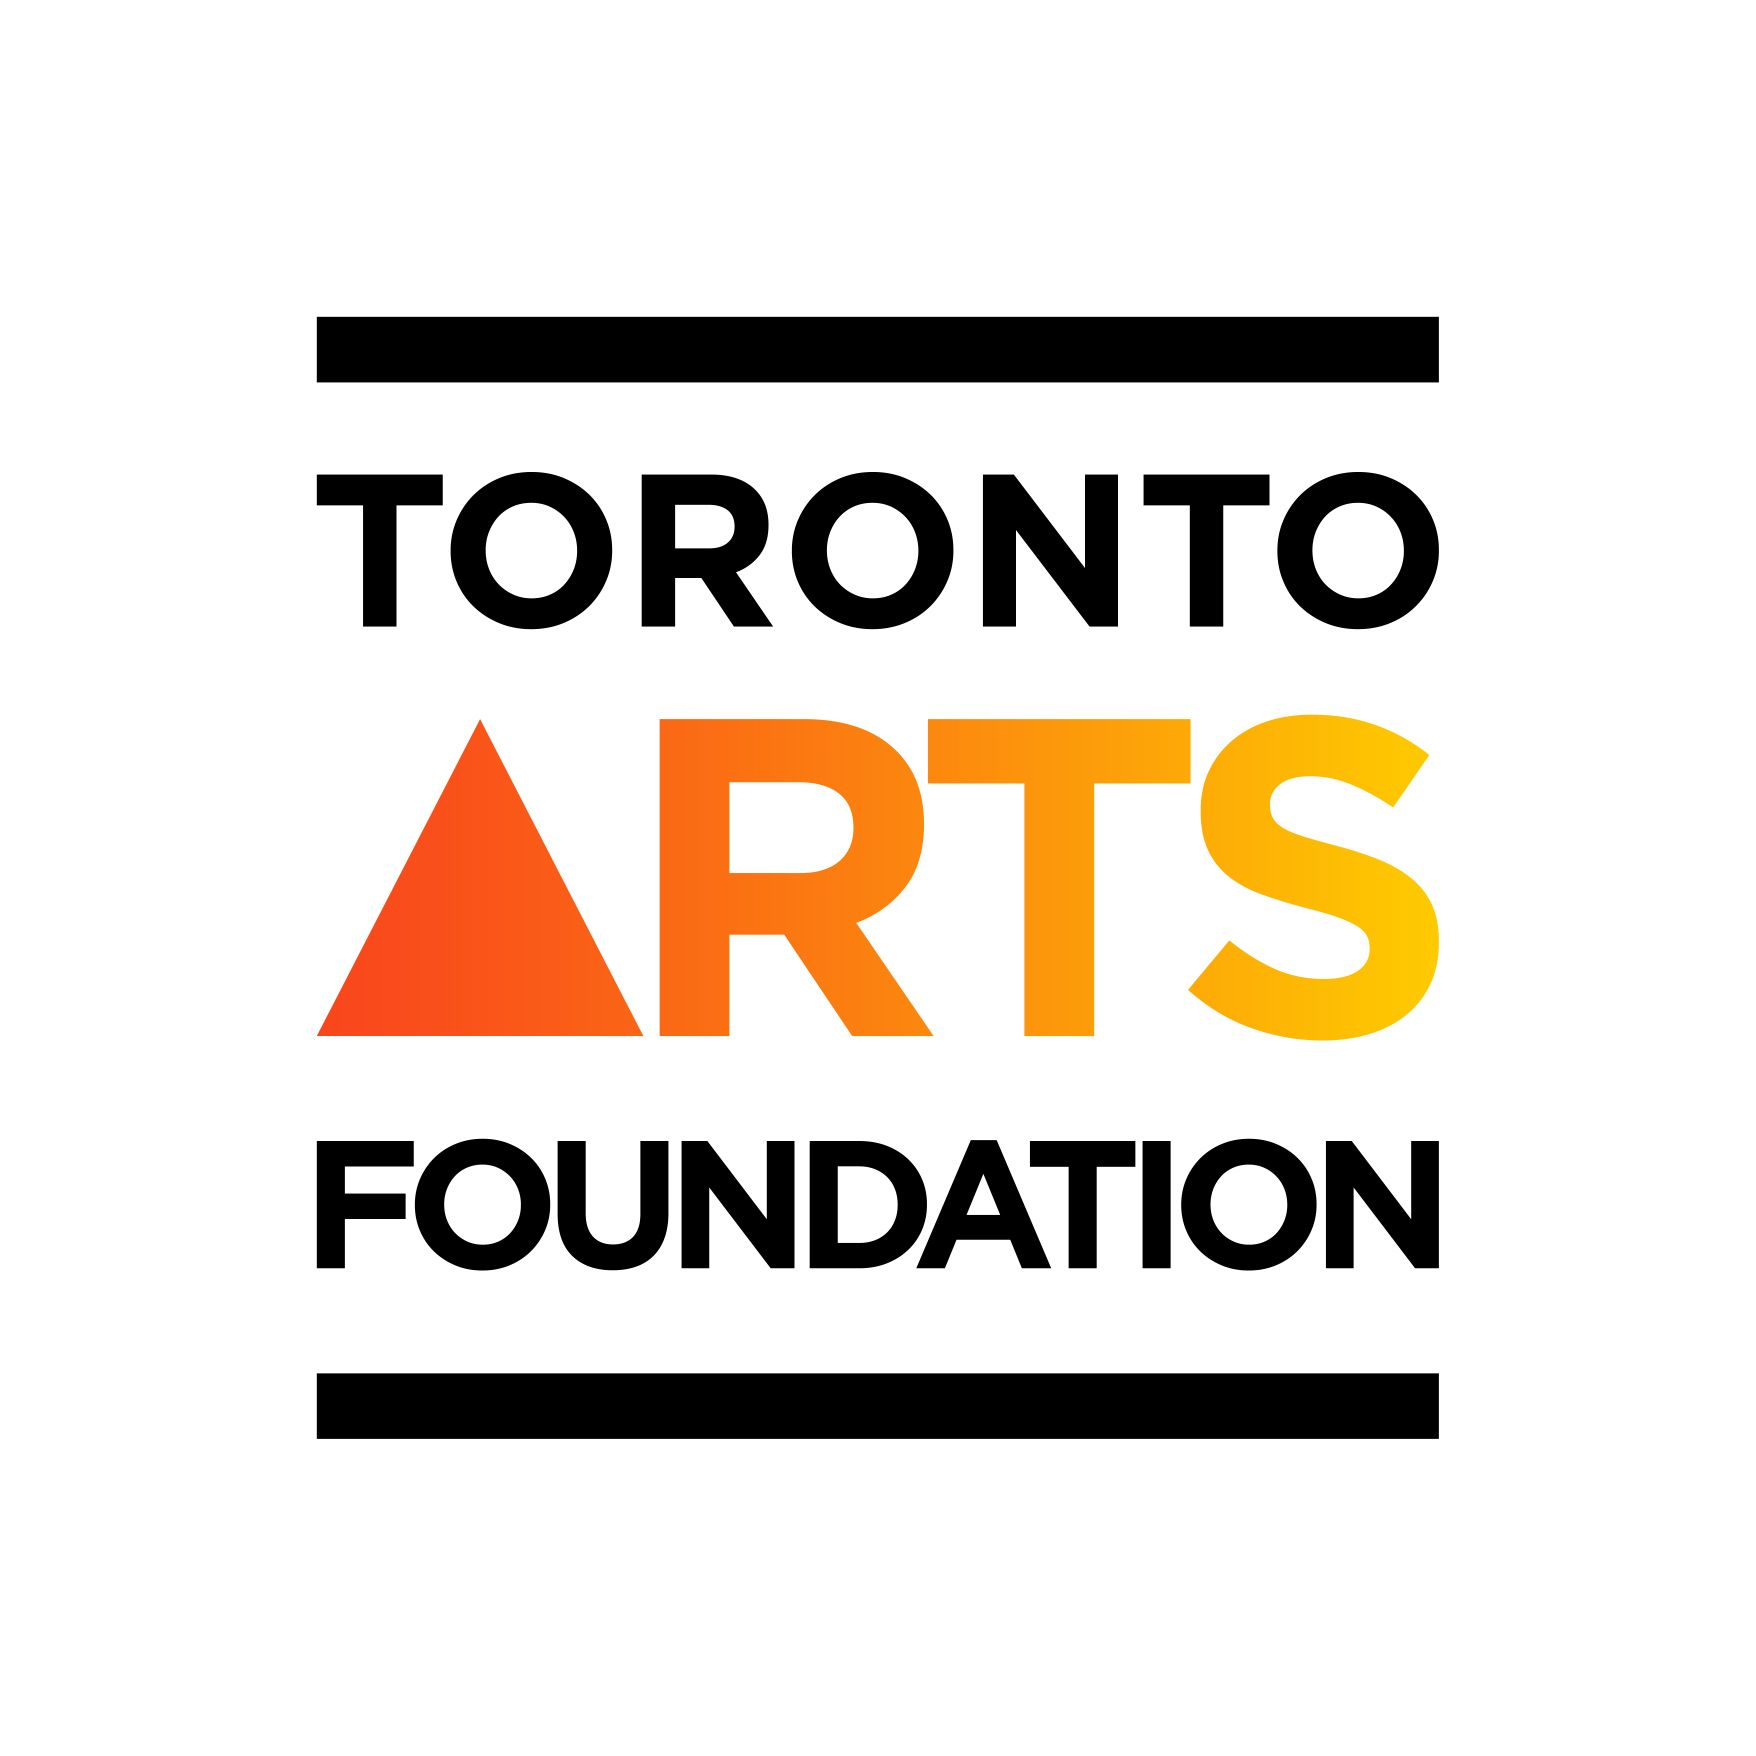 Toronto Arts Foundation